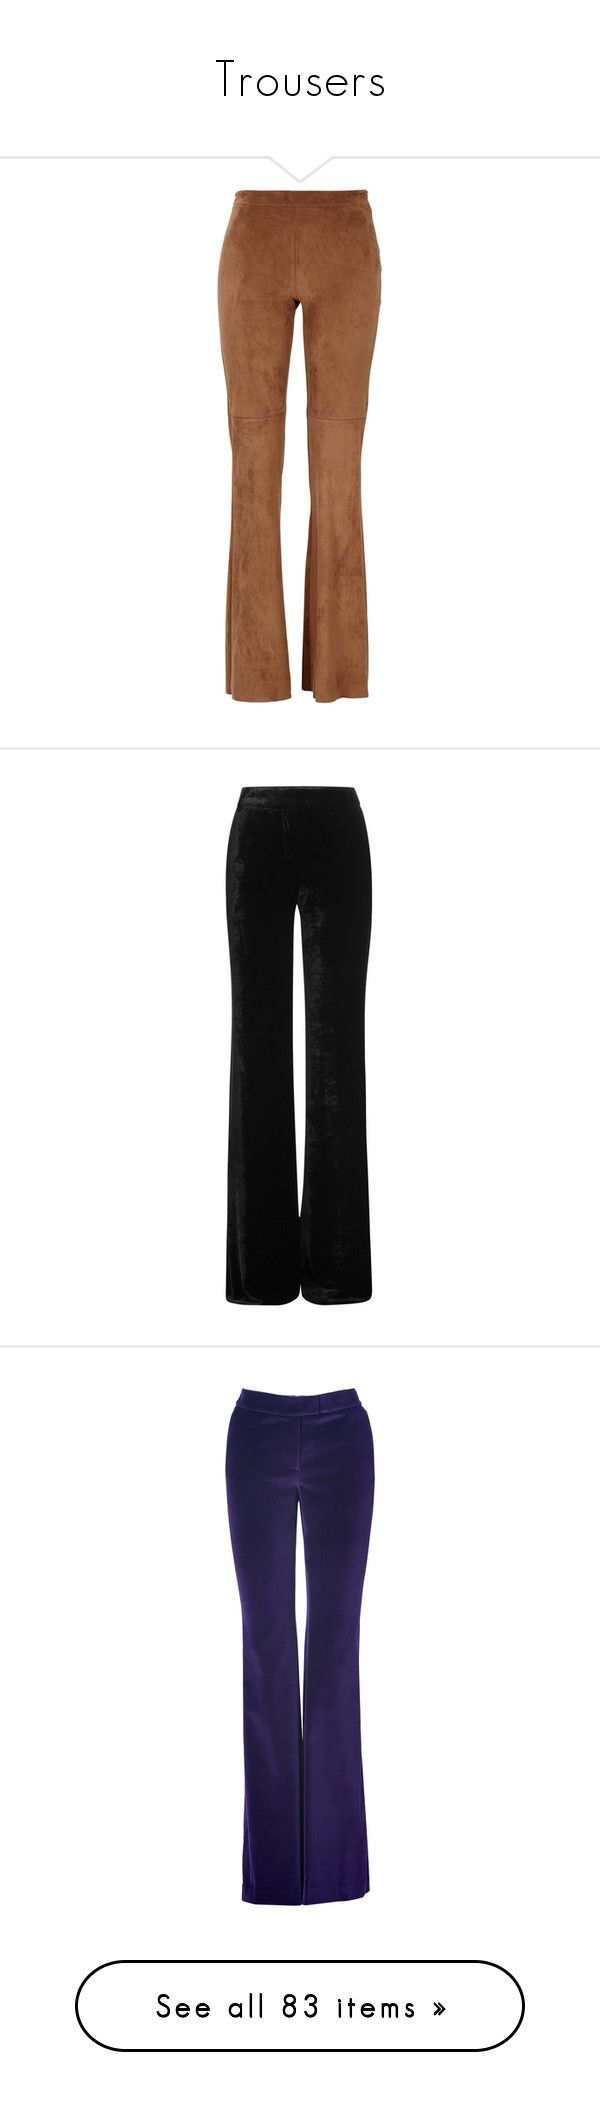 """""""Trousers"""" by darling-muse ❤ liked on Polyvore featuring pants, bottoms, trousers, calça, jeans, black, wide leg trousers, wide leg pants, zip pants and emilio pucci pants"""